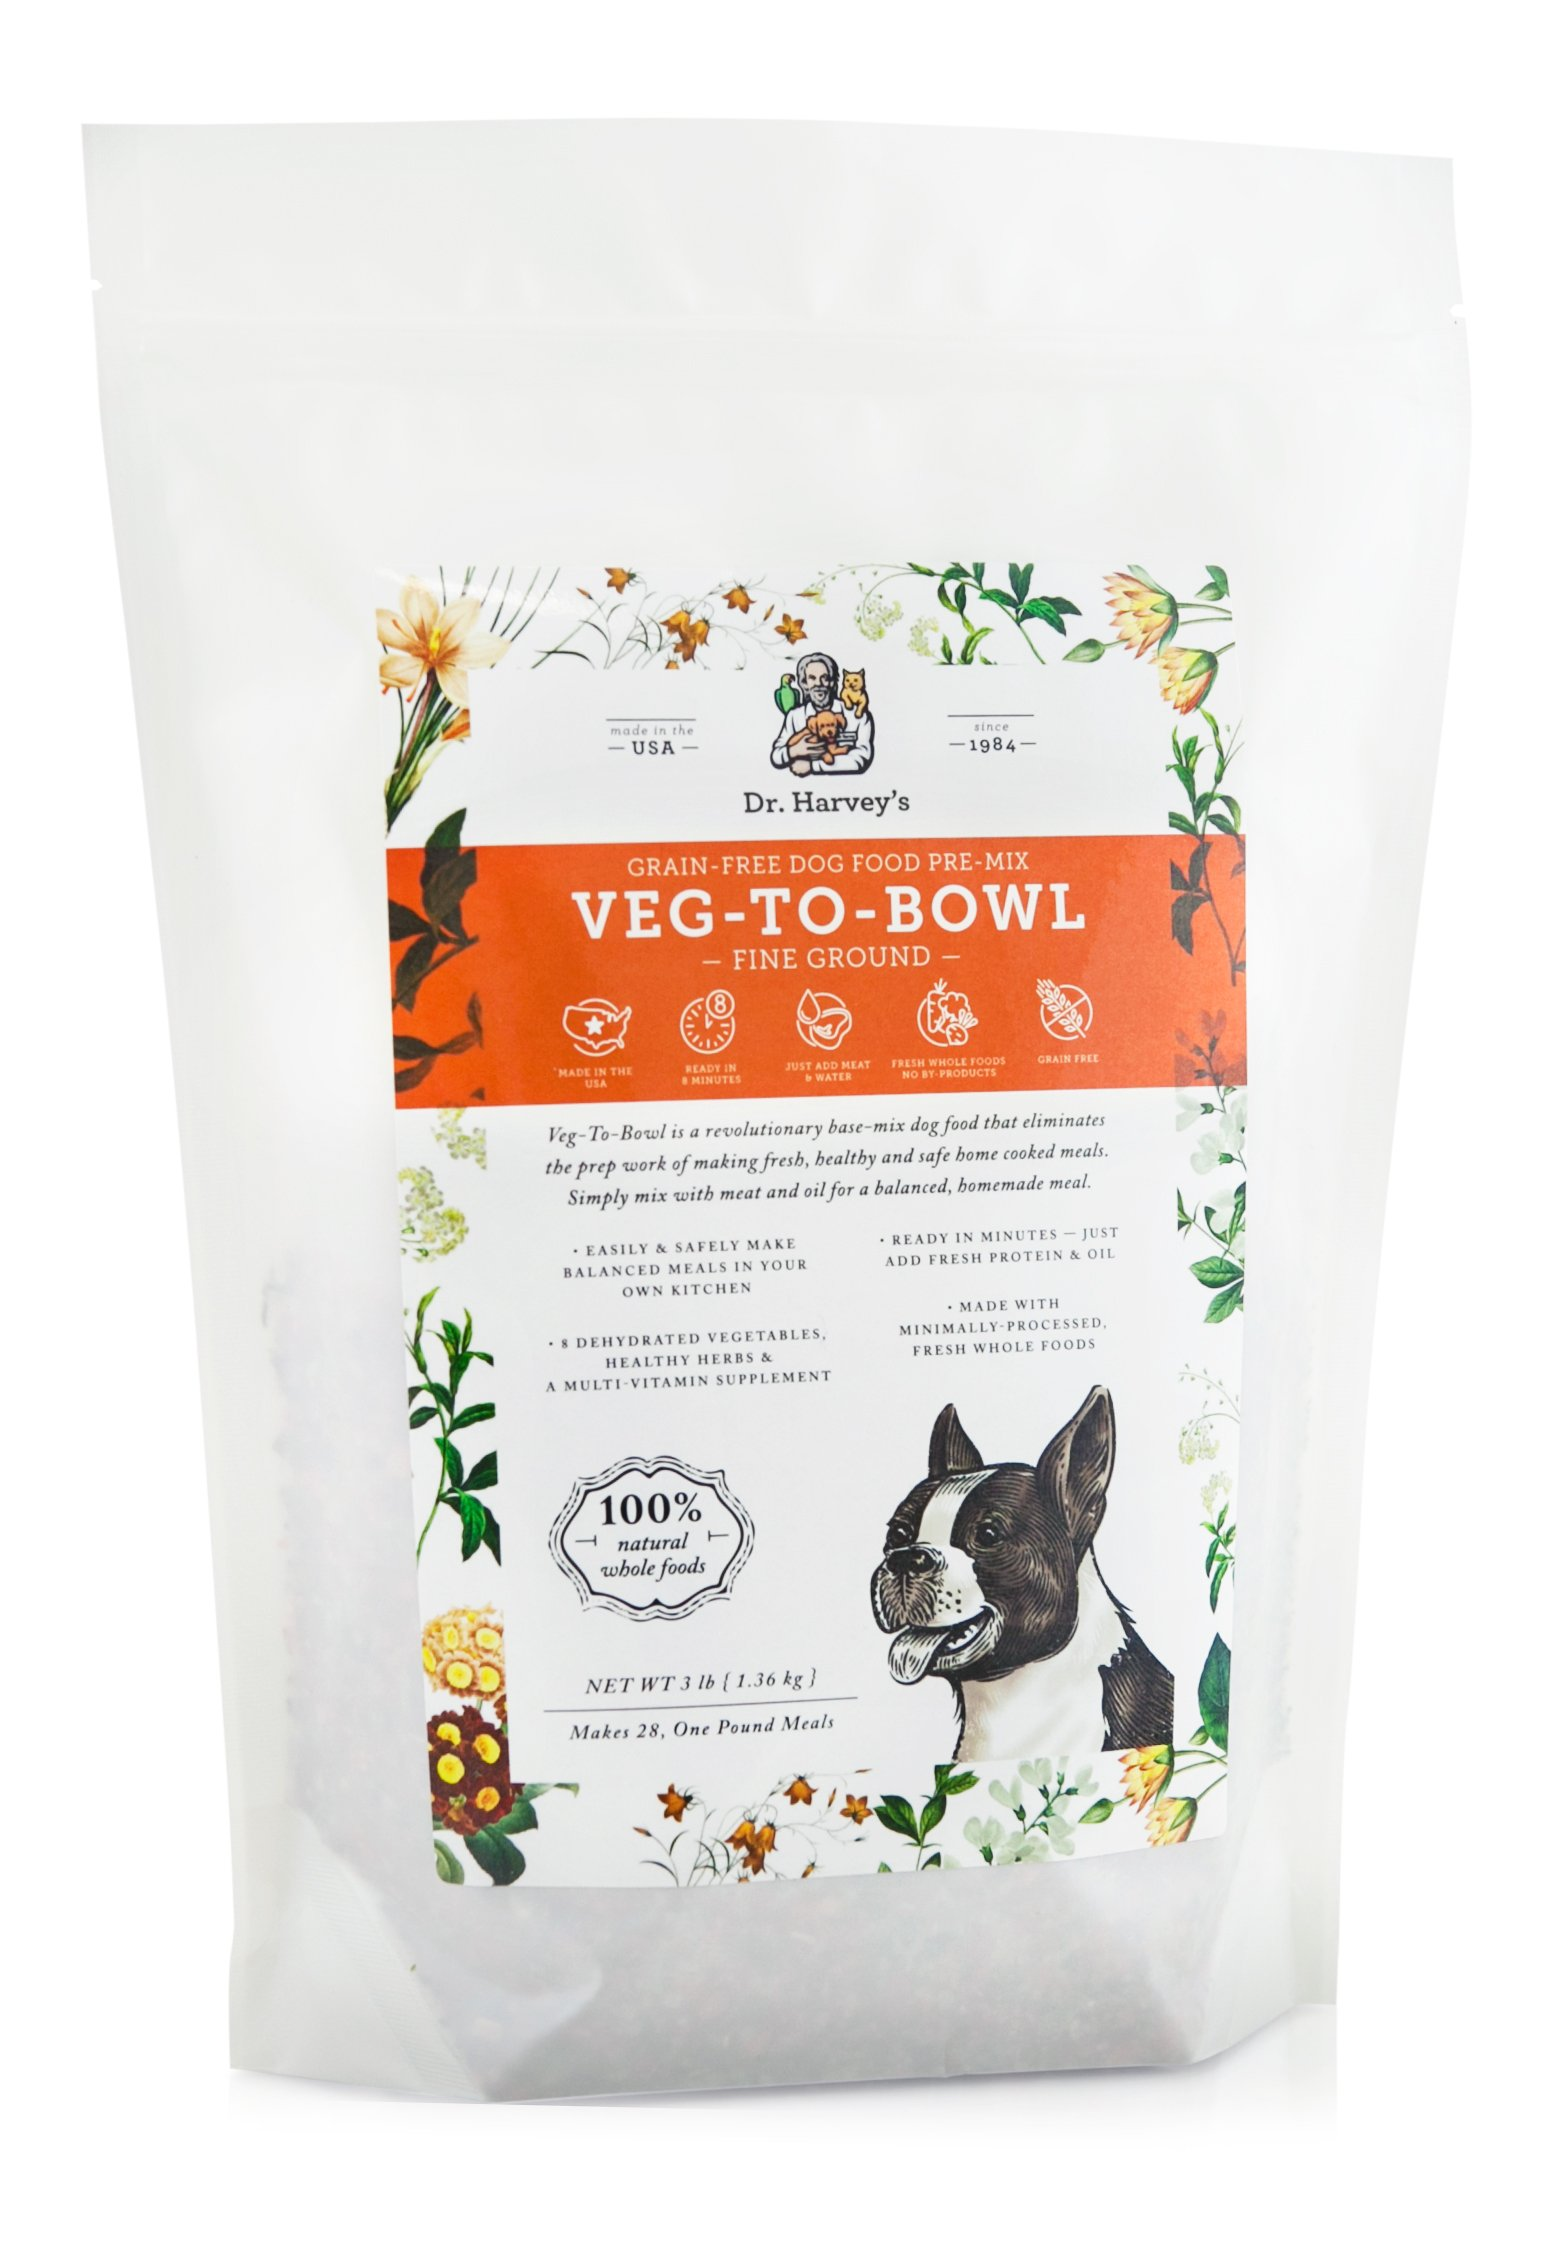 Dr. Harvey's Veg-to-Bowl Fine Ground Dog Food, Human Grade Dehydrated Base Mix for Dogs, Grain Free Holistic Mix for Small Dogs or Picky Eaters (3 Pounds) by Dr. Harvey's